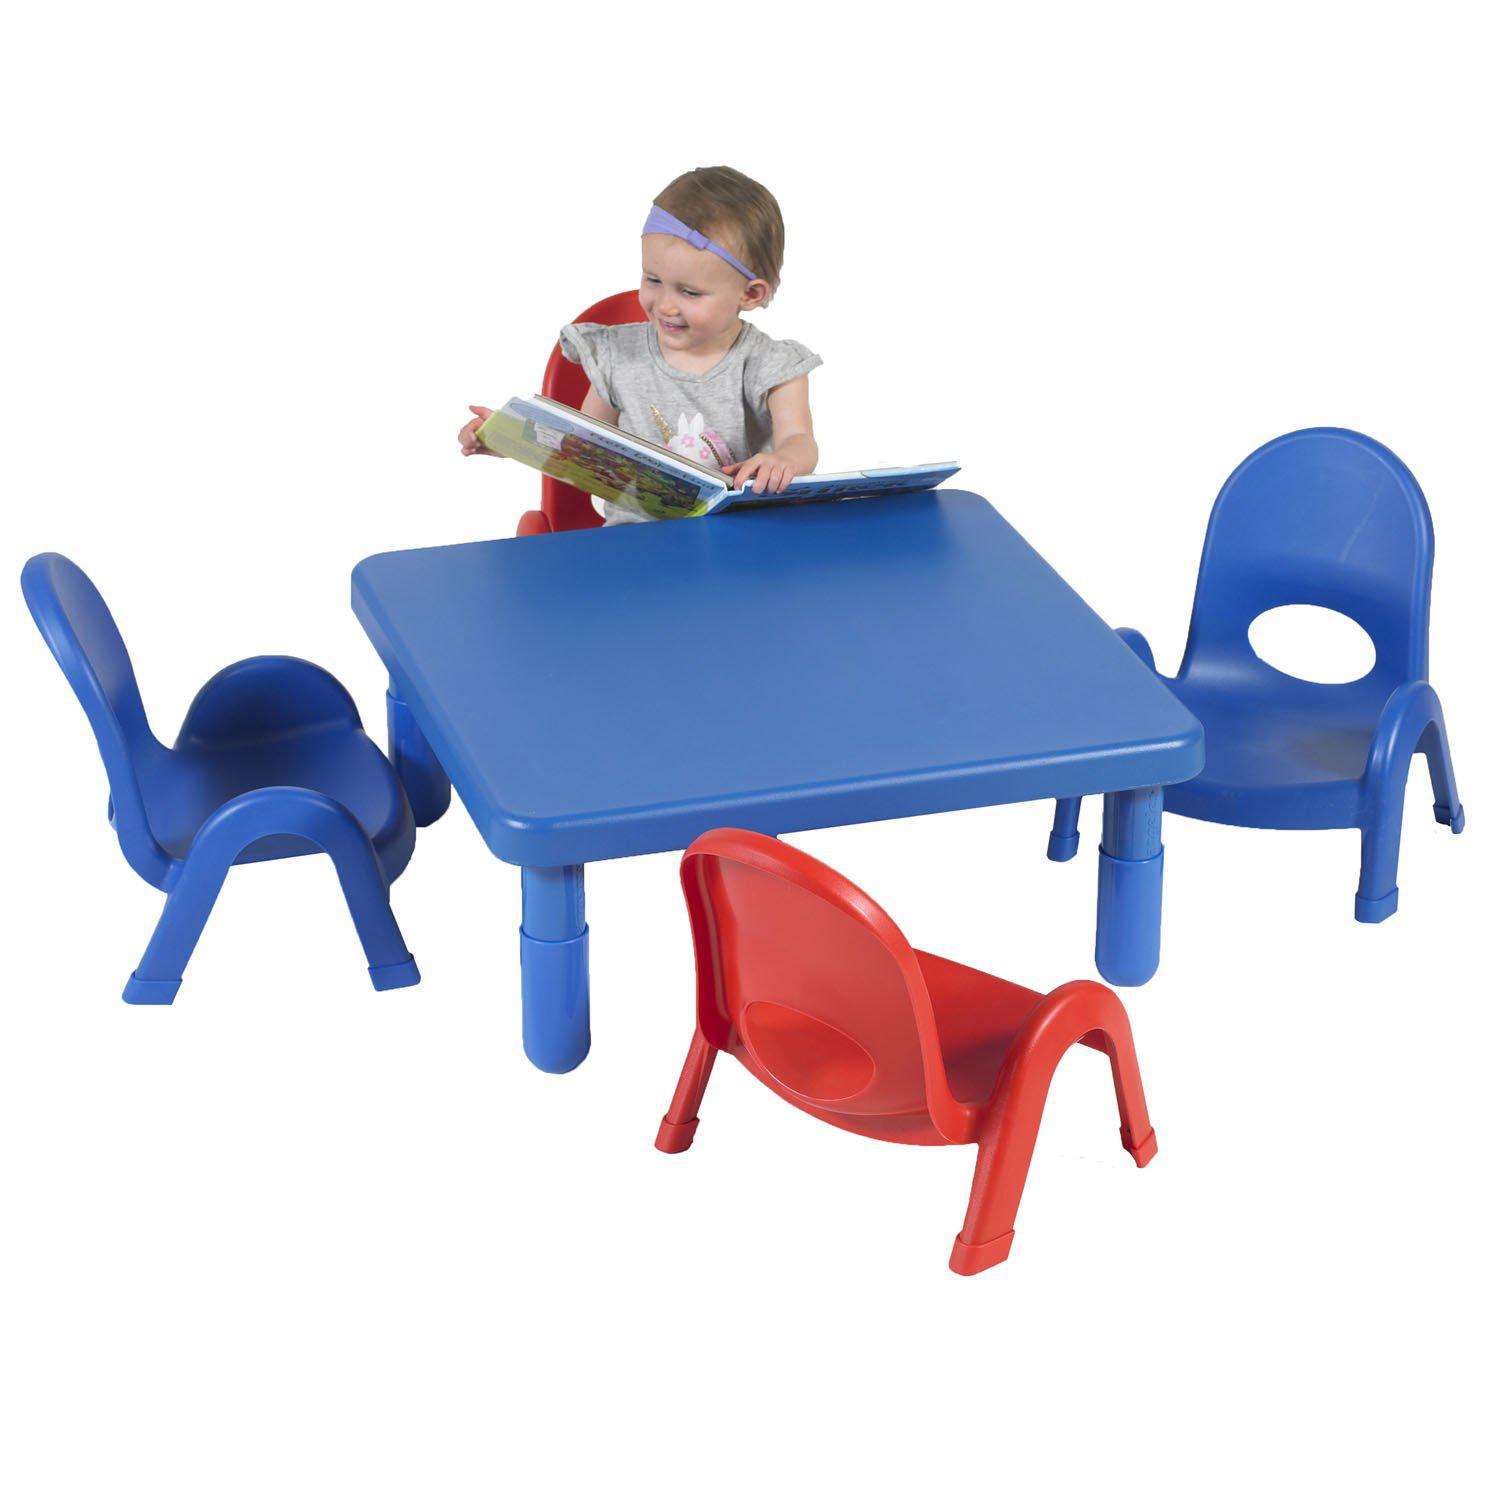 "Toddler MyValue™ Table and Chair Set - 28"" Square x 12""-High Royal Blue Table with 2 Royal Blue and 2 Candy Apple Red 5""-High Chairs"